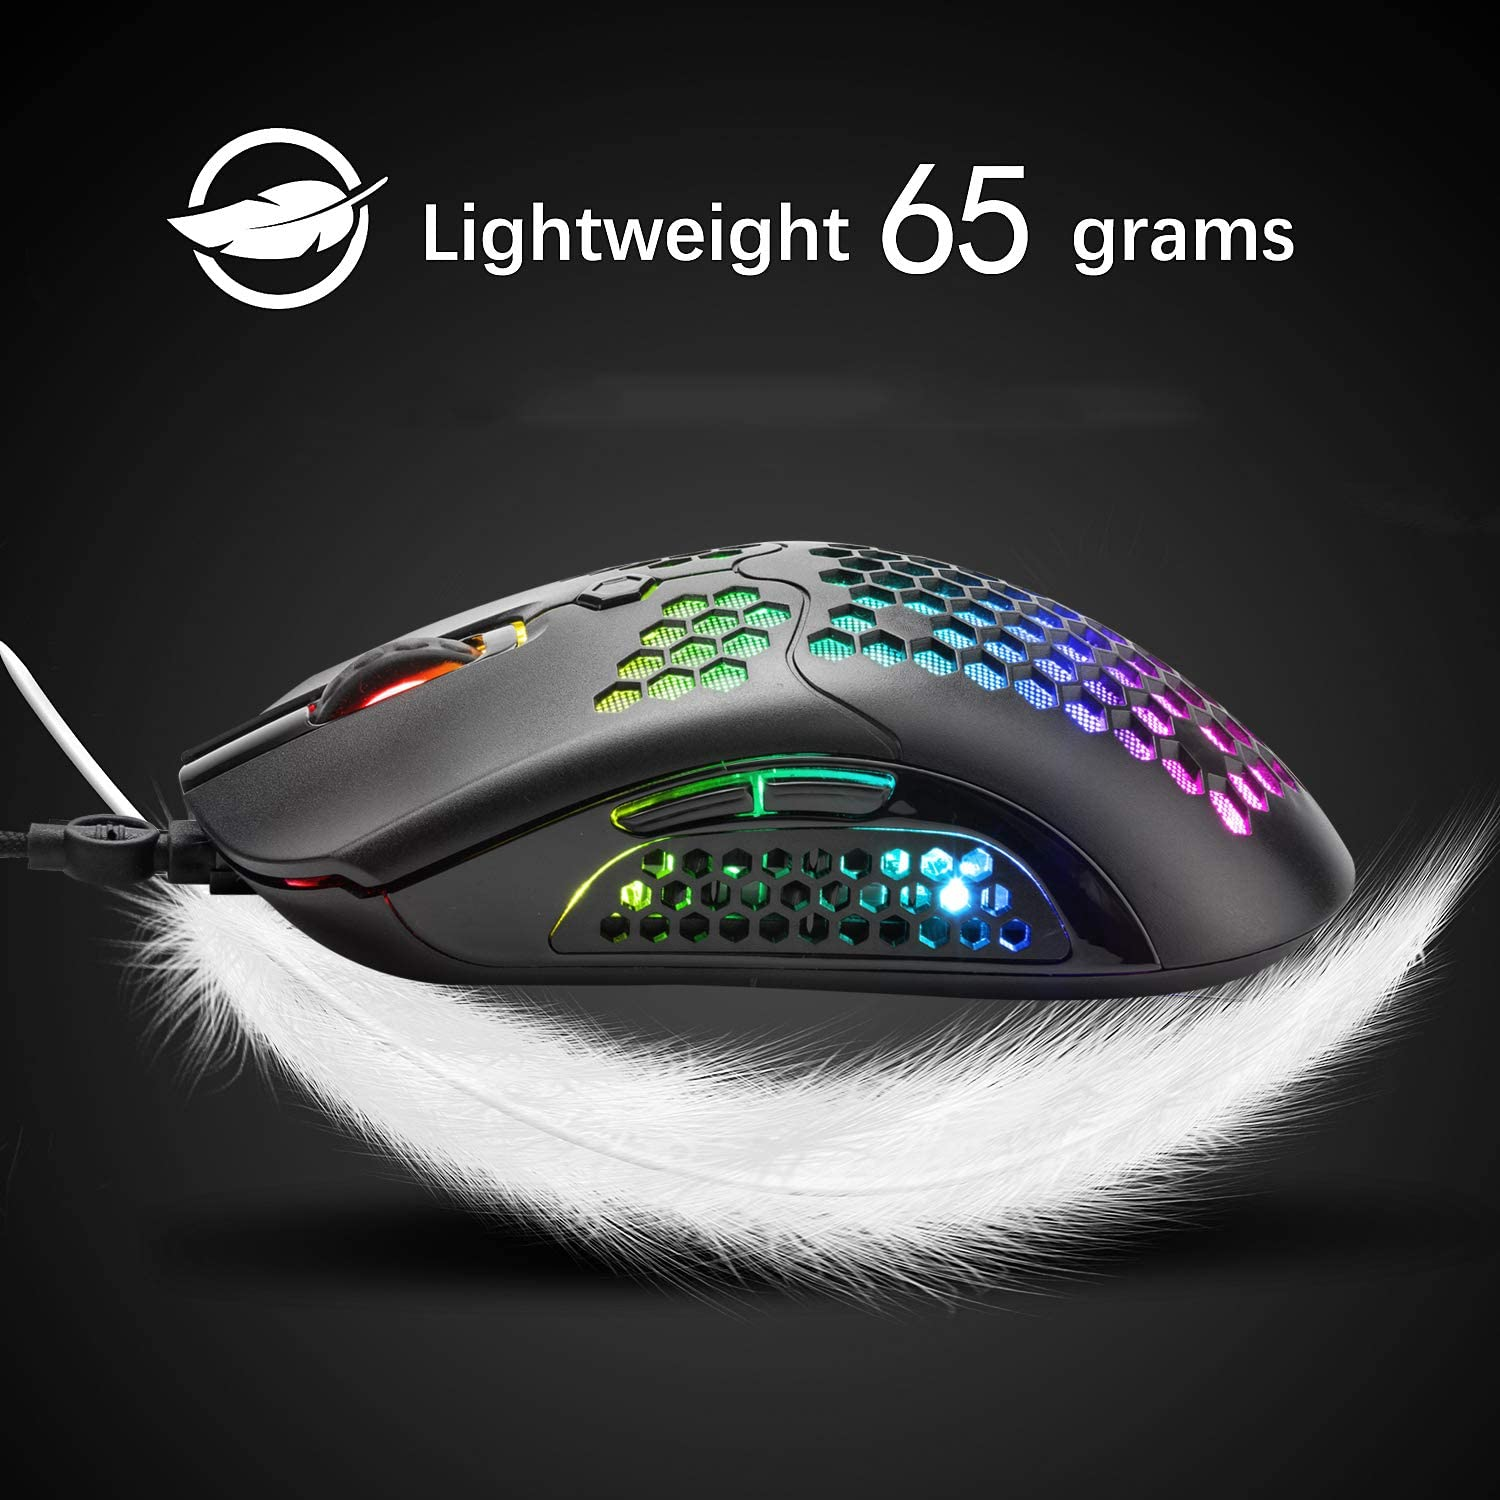 26 RGB Backlit Mice /& 7 Buttons Programmable Driver,PAW3325 12000DPI,Ultralight Honeycomb Shell Ultraweave Cable Mouse Compatible with PC Gamers and Xbox and PS4 Lightweight Wired Gaming Mouse